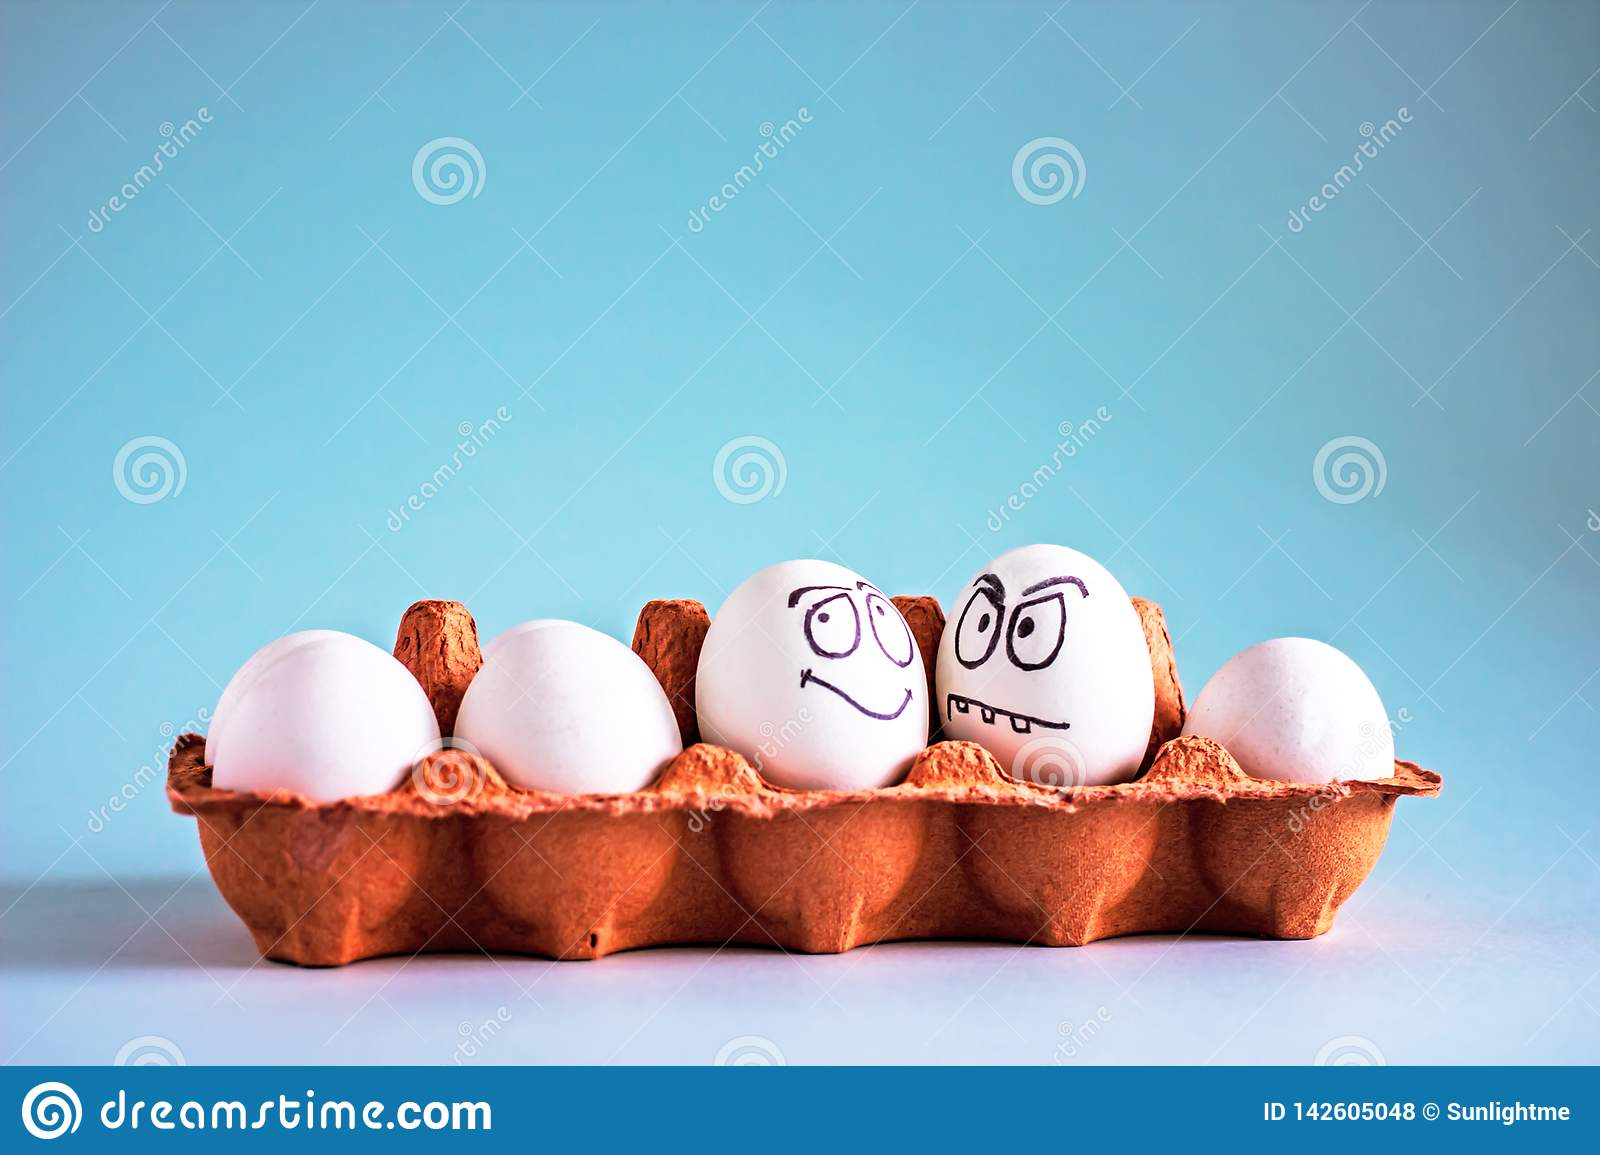 Funny chicken white eggs with faces in an egg cell.